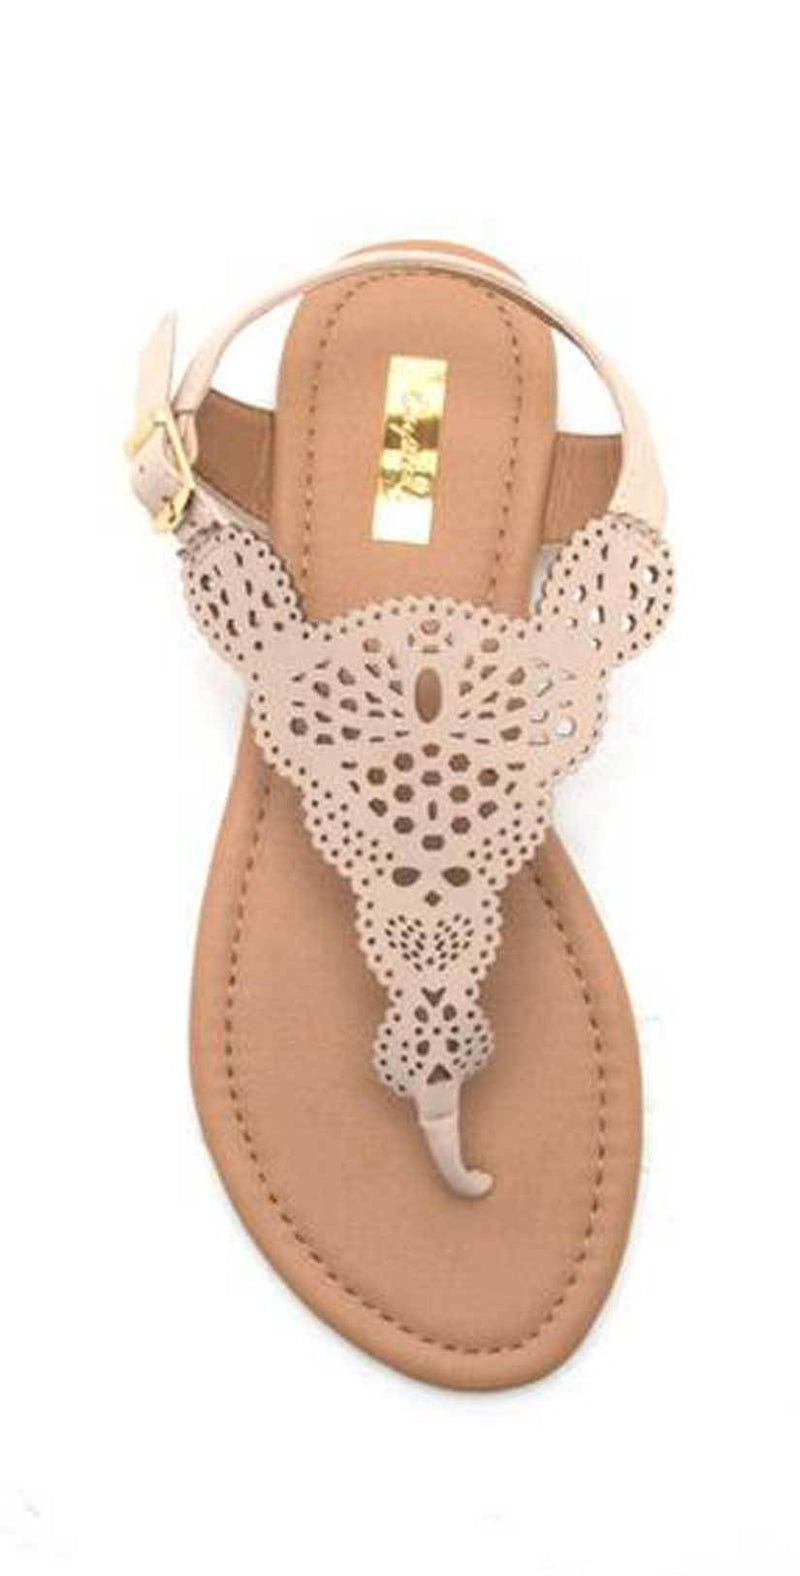 Qupid Shoes Archer Cut Out Sandal in Nude ARCHER-207X NUDE: